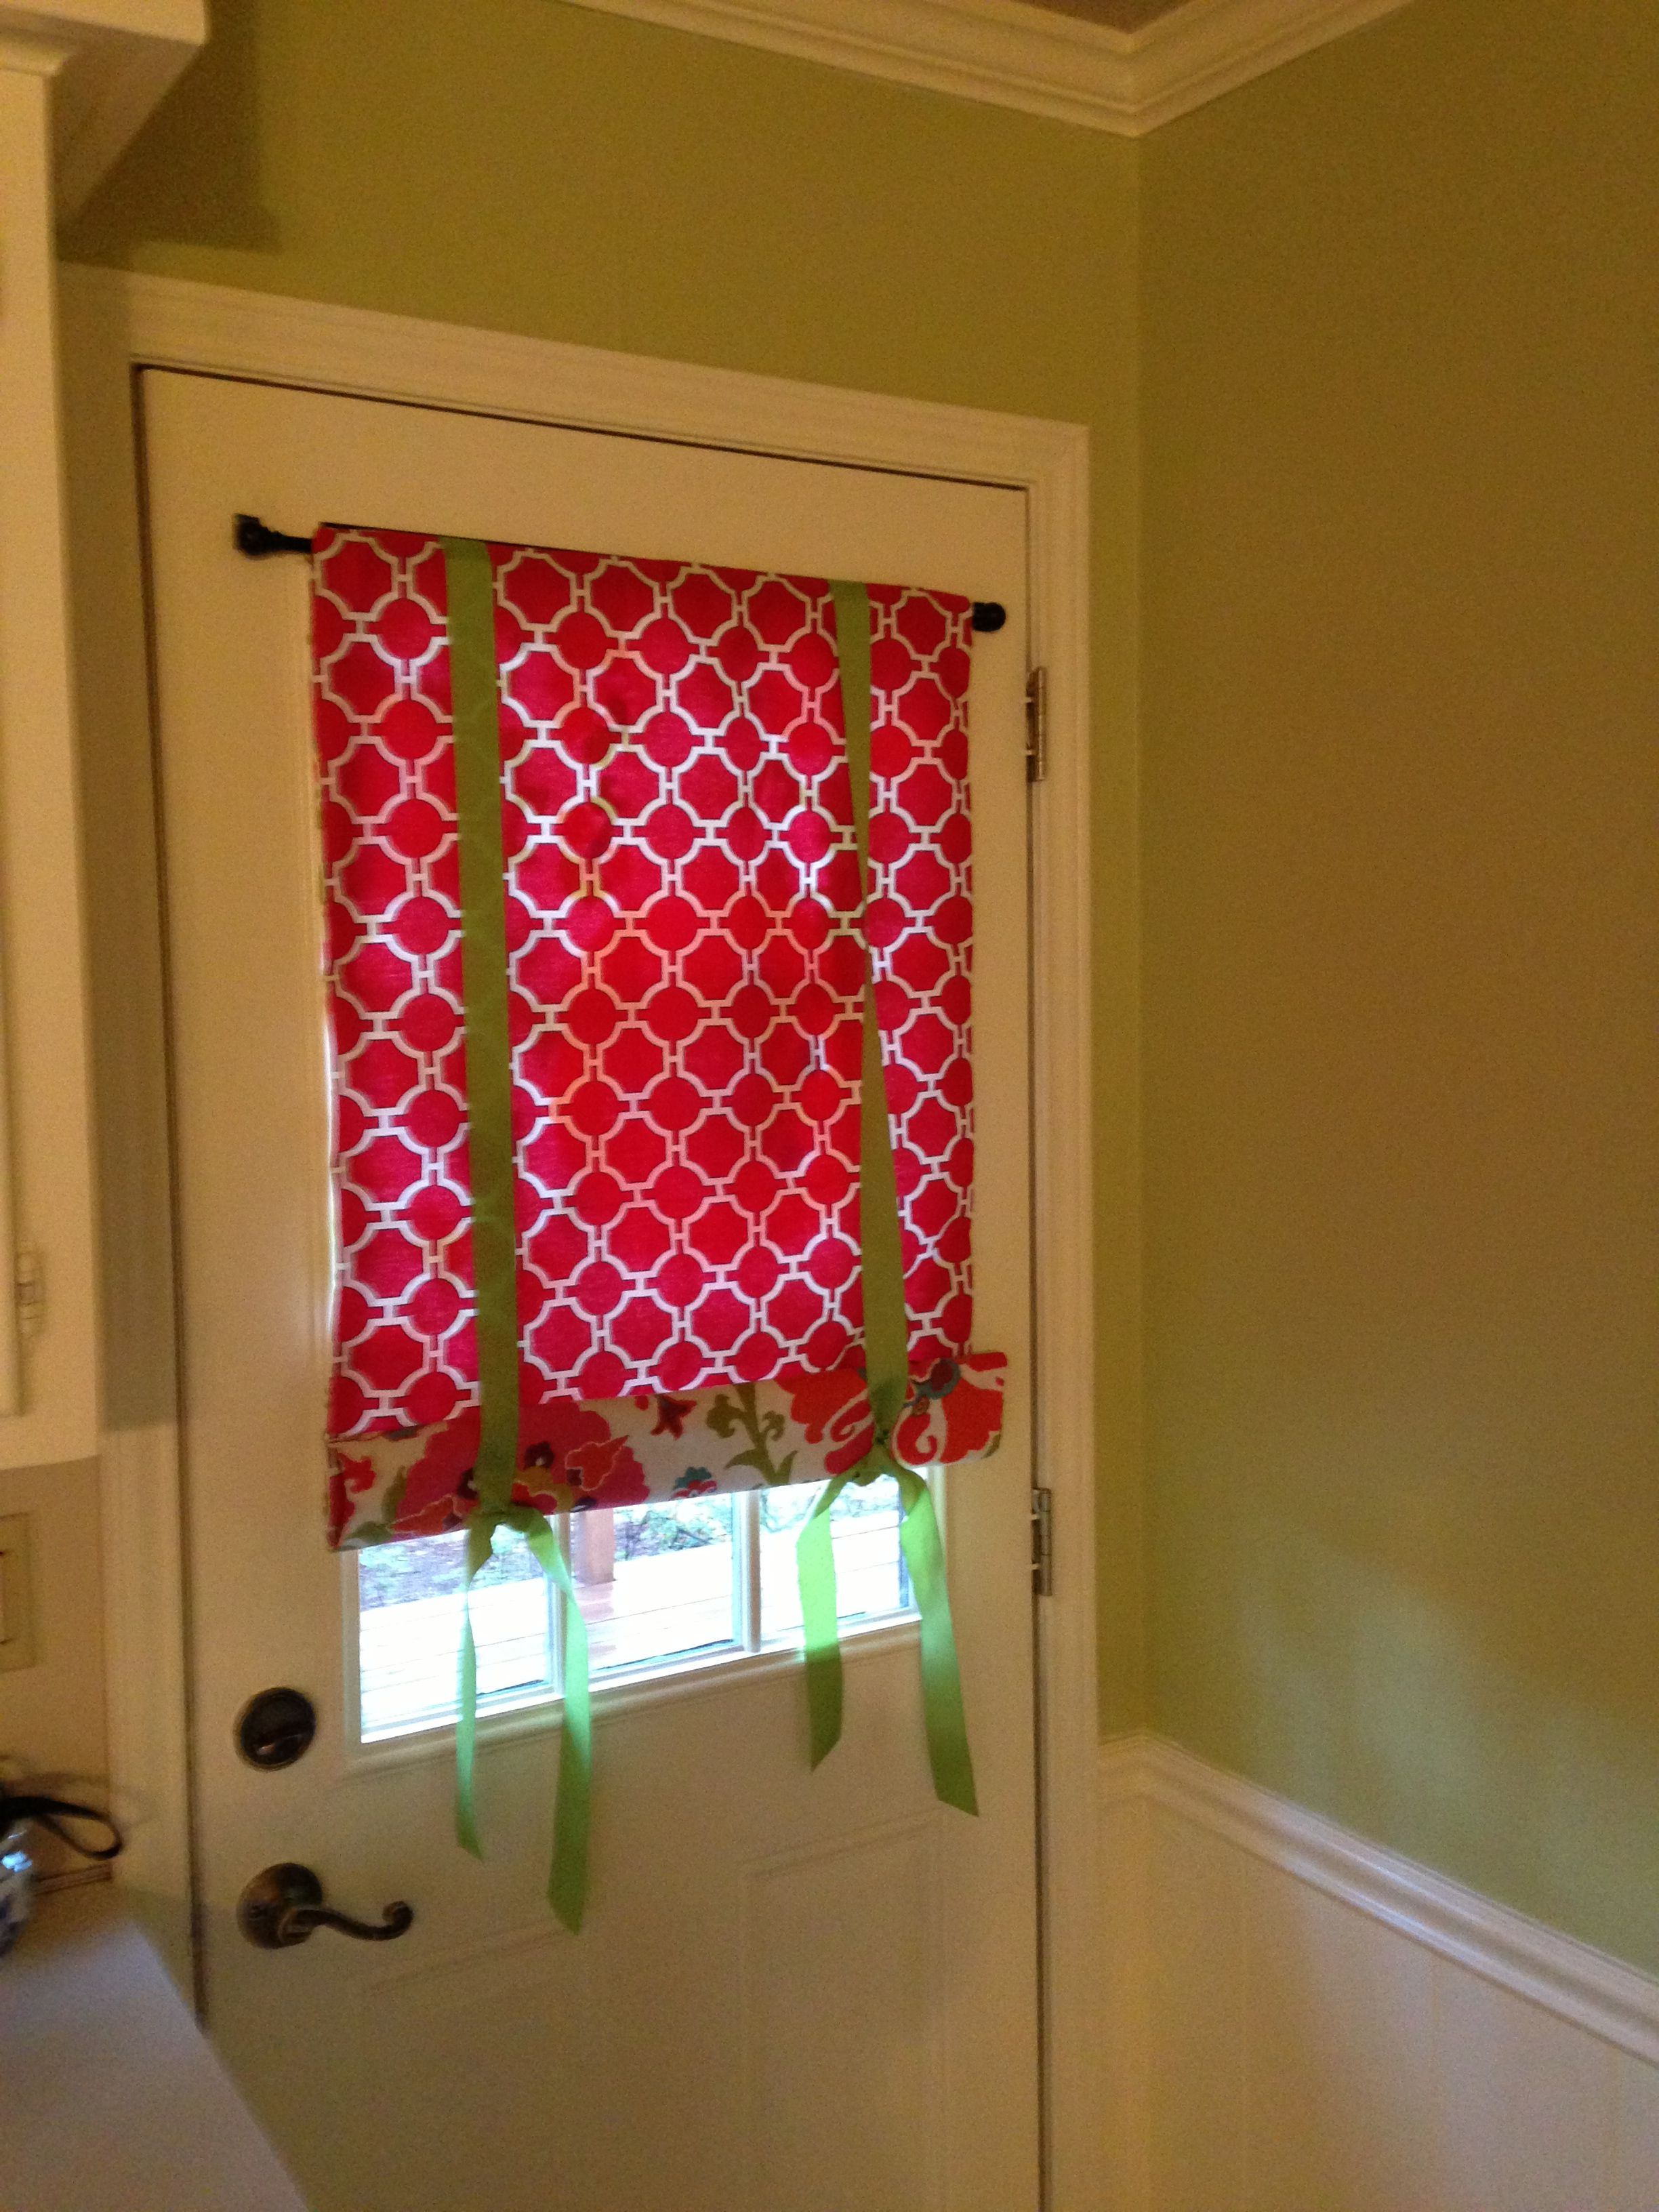 Curtains For Back Door Google Search Small Window Curtains Fabric Blinds Curtains With Blinds